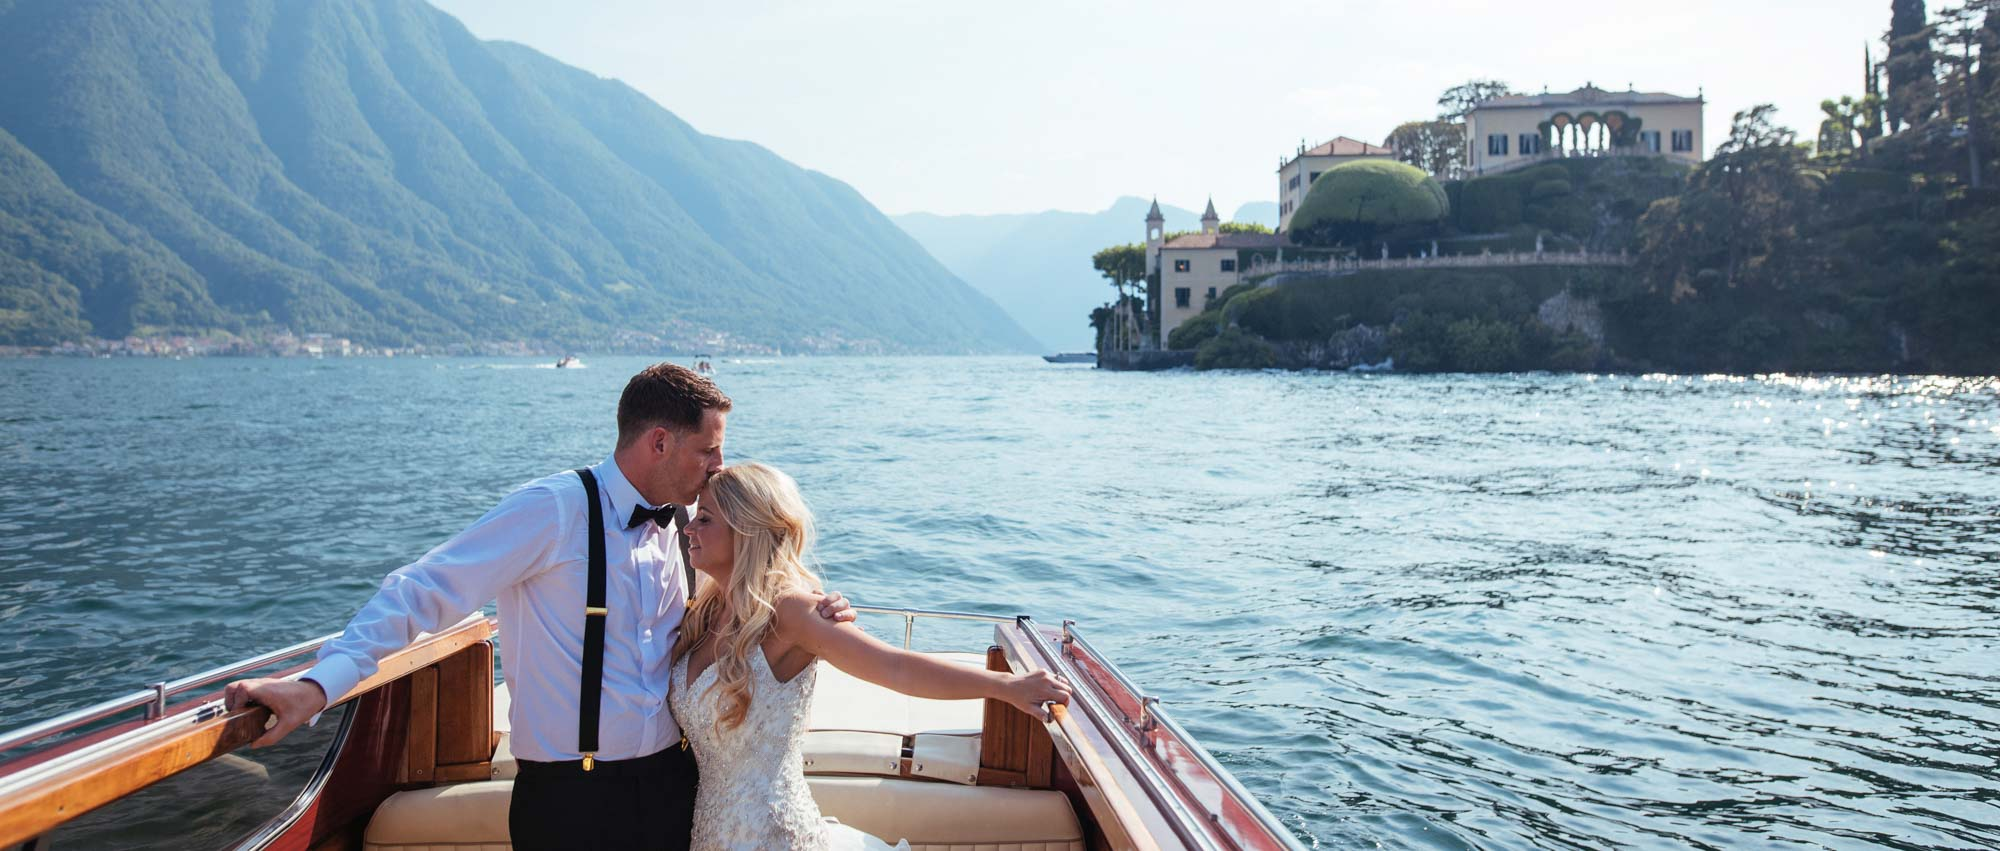 Modern Love / Destination Wedding in Villa Leoni Lake Como